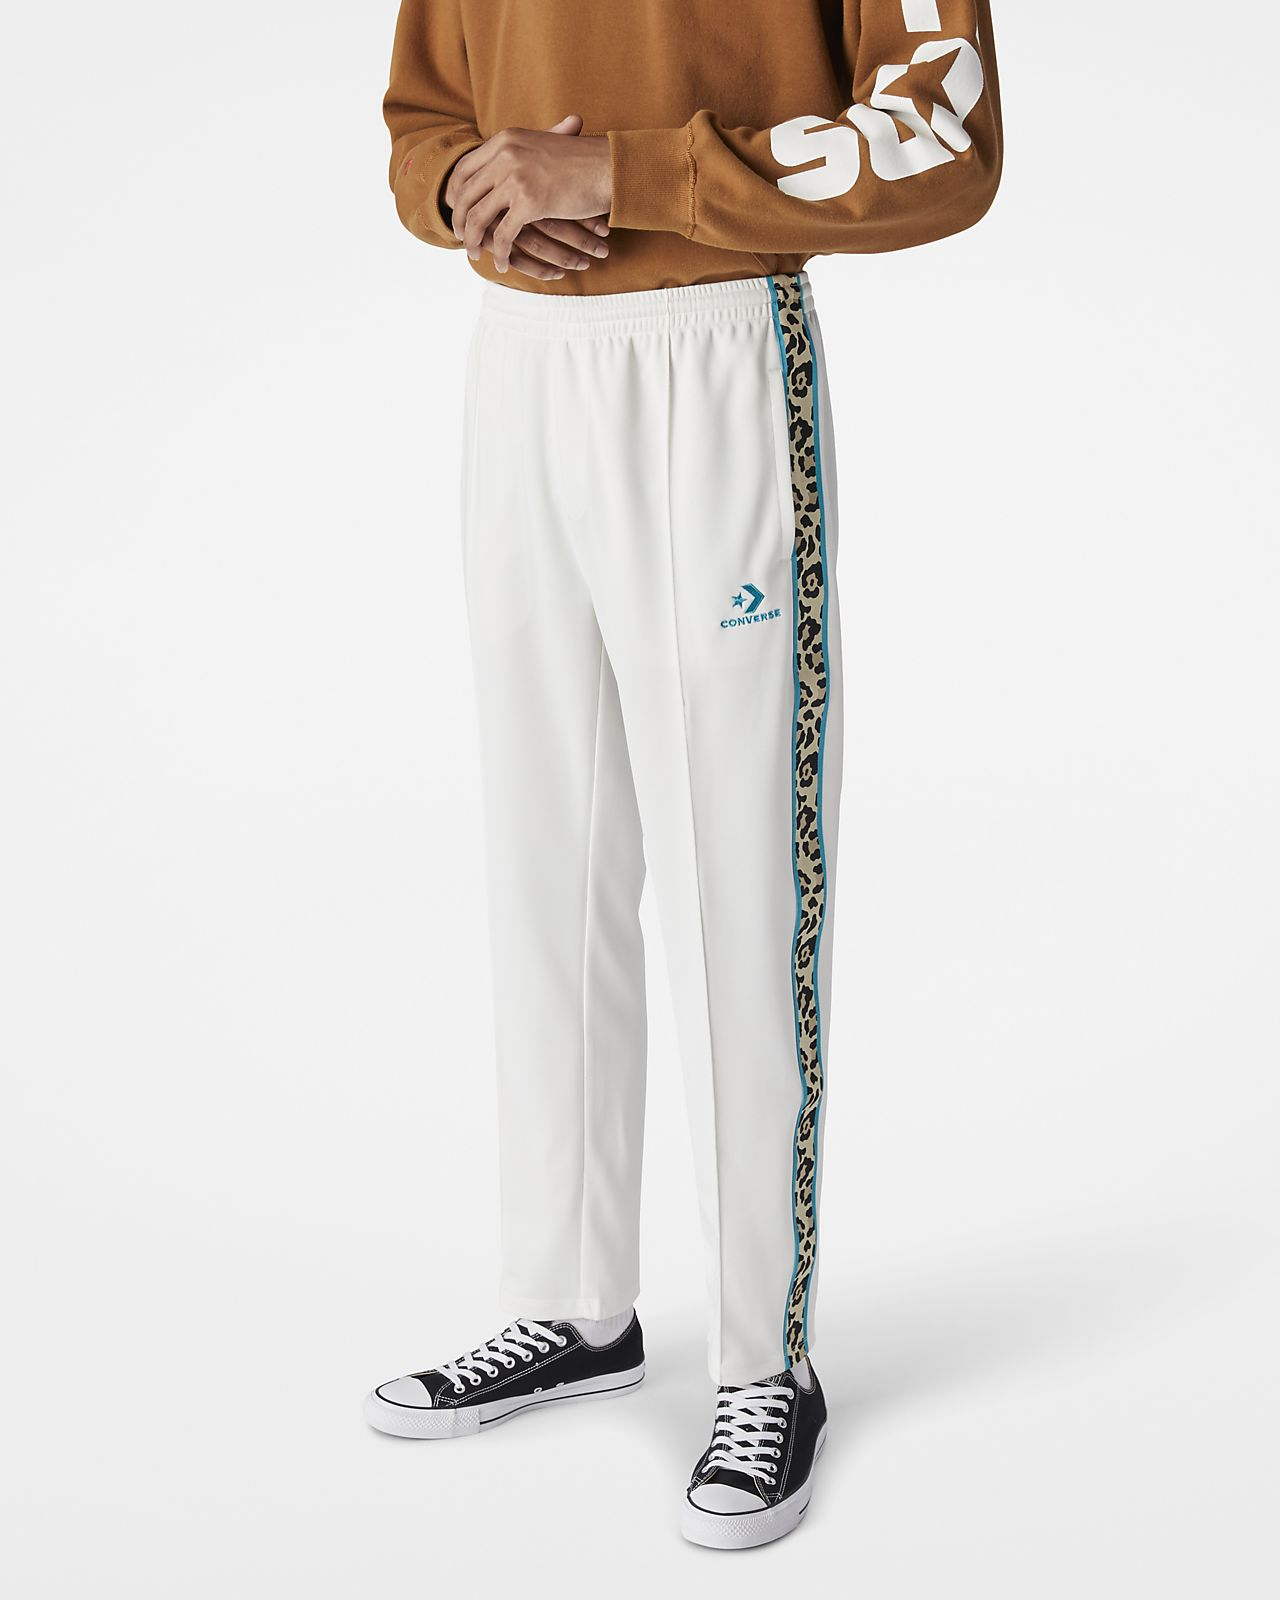 Converse by Don C  Mascot Track Pants